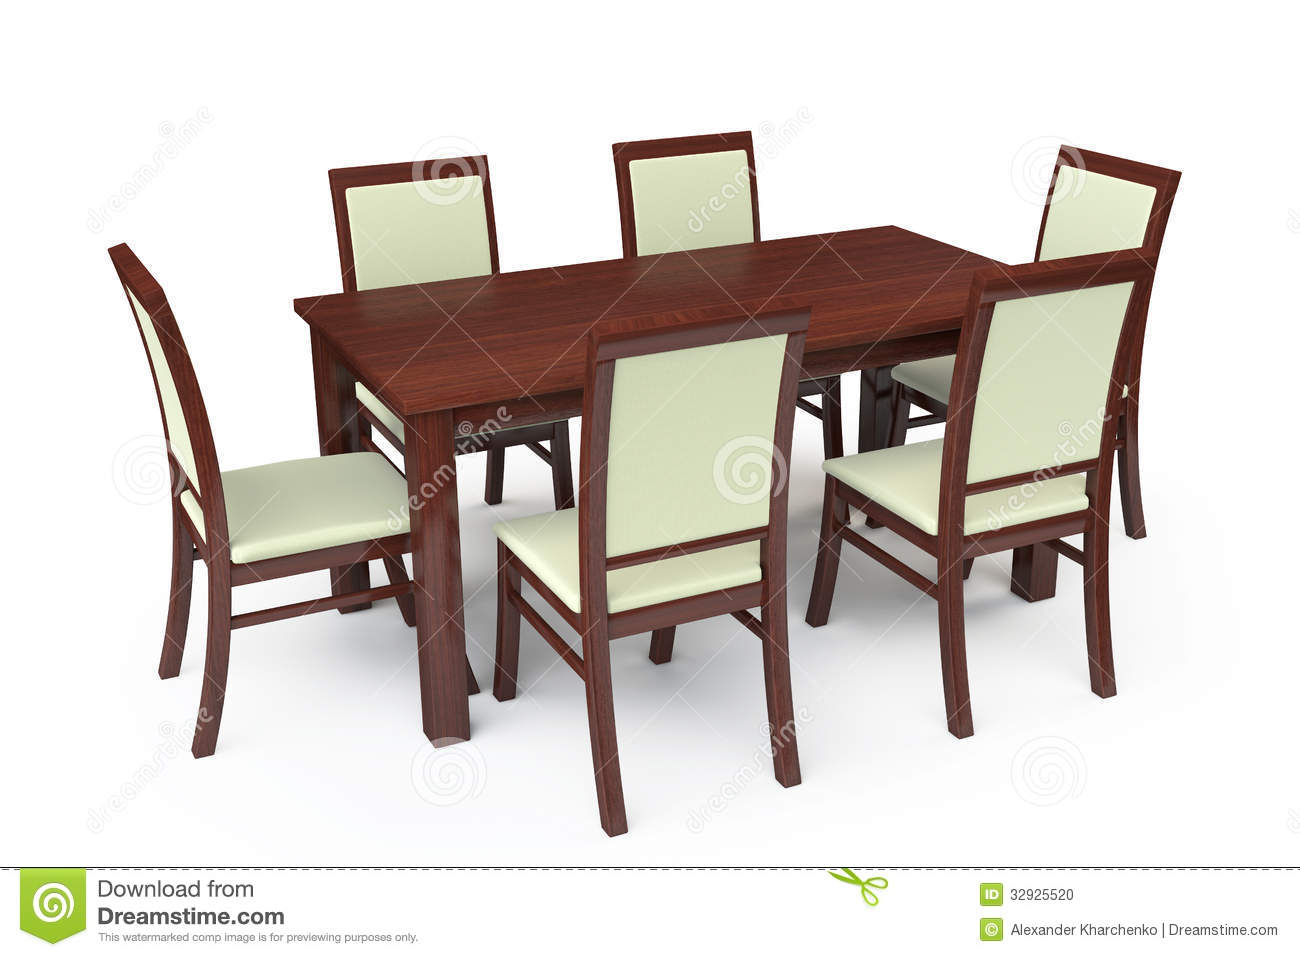 Table de salle manger avec six chaises photo stock for Table salle 0 manger